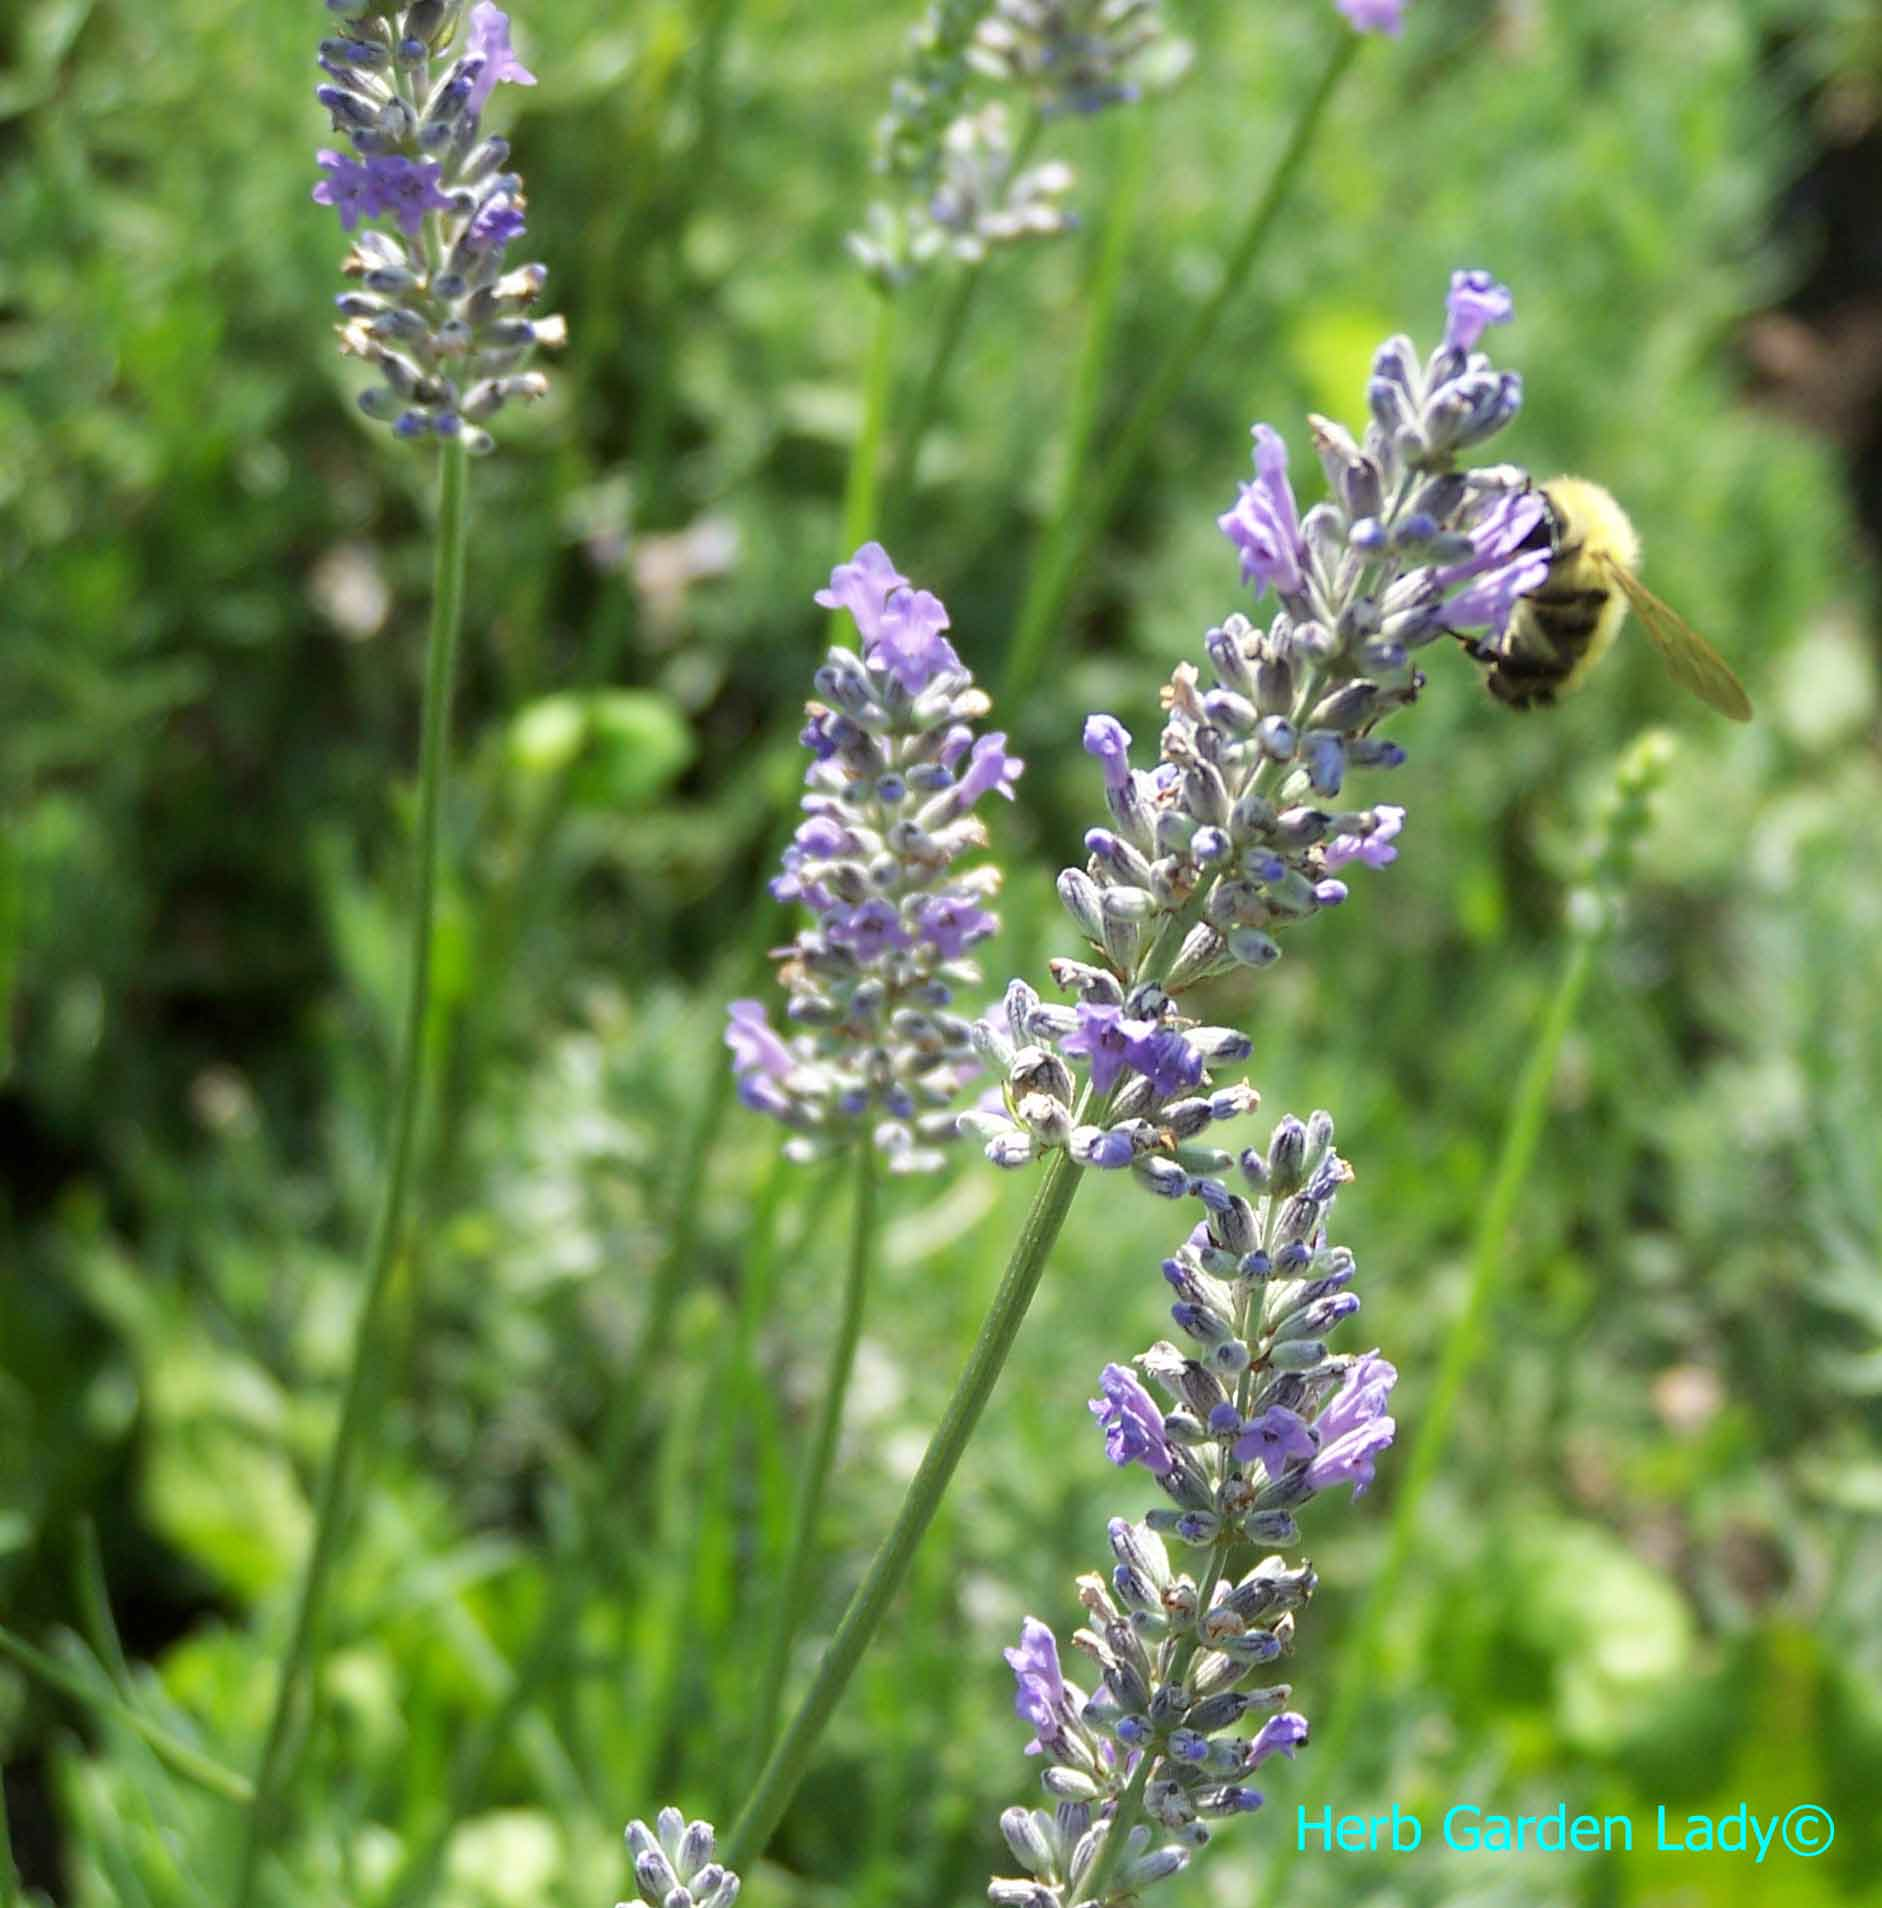 Lavender herb has many uses in aromatherapy.